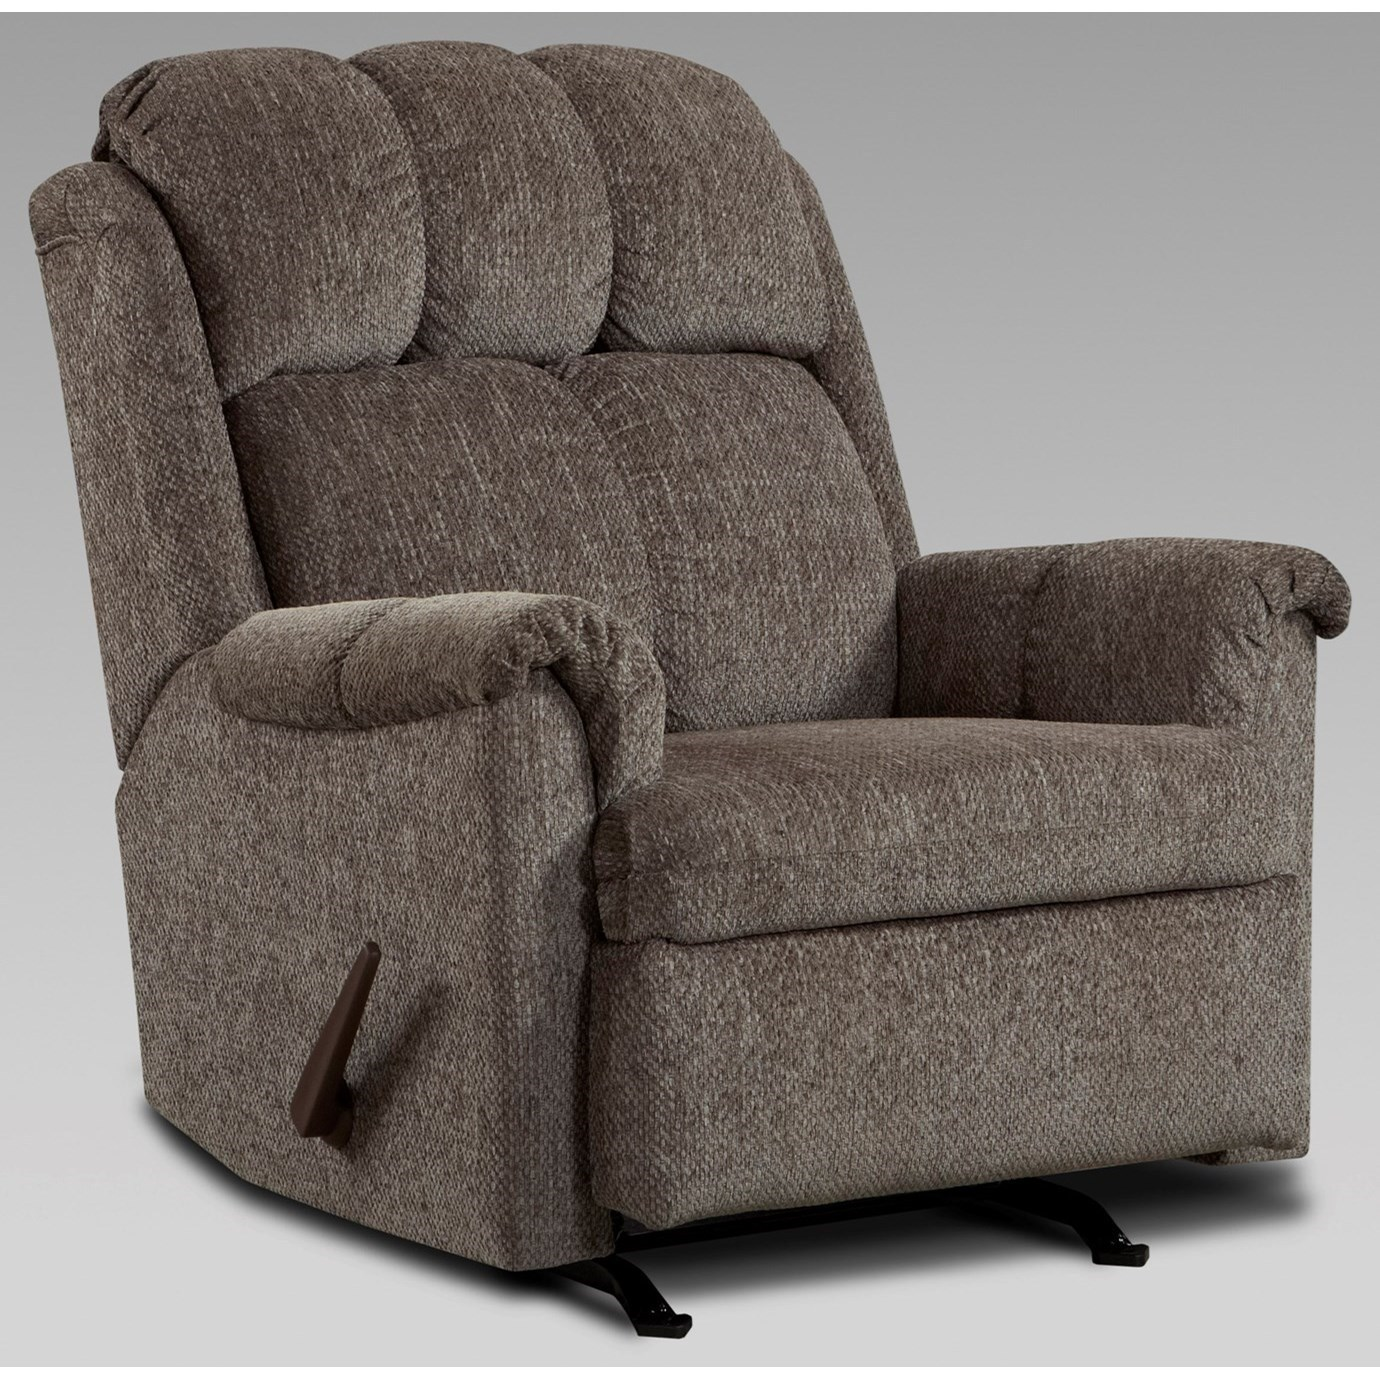 6150 Rocker Recliner by Affordable Furniture